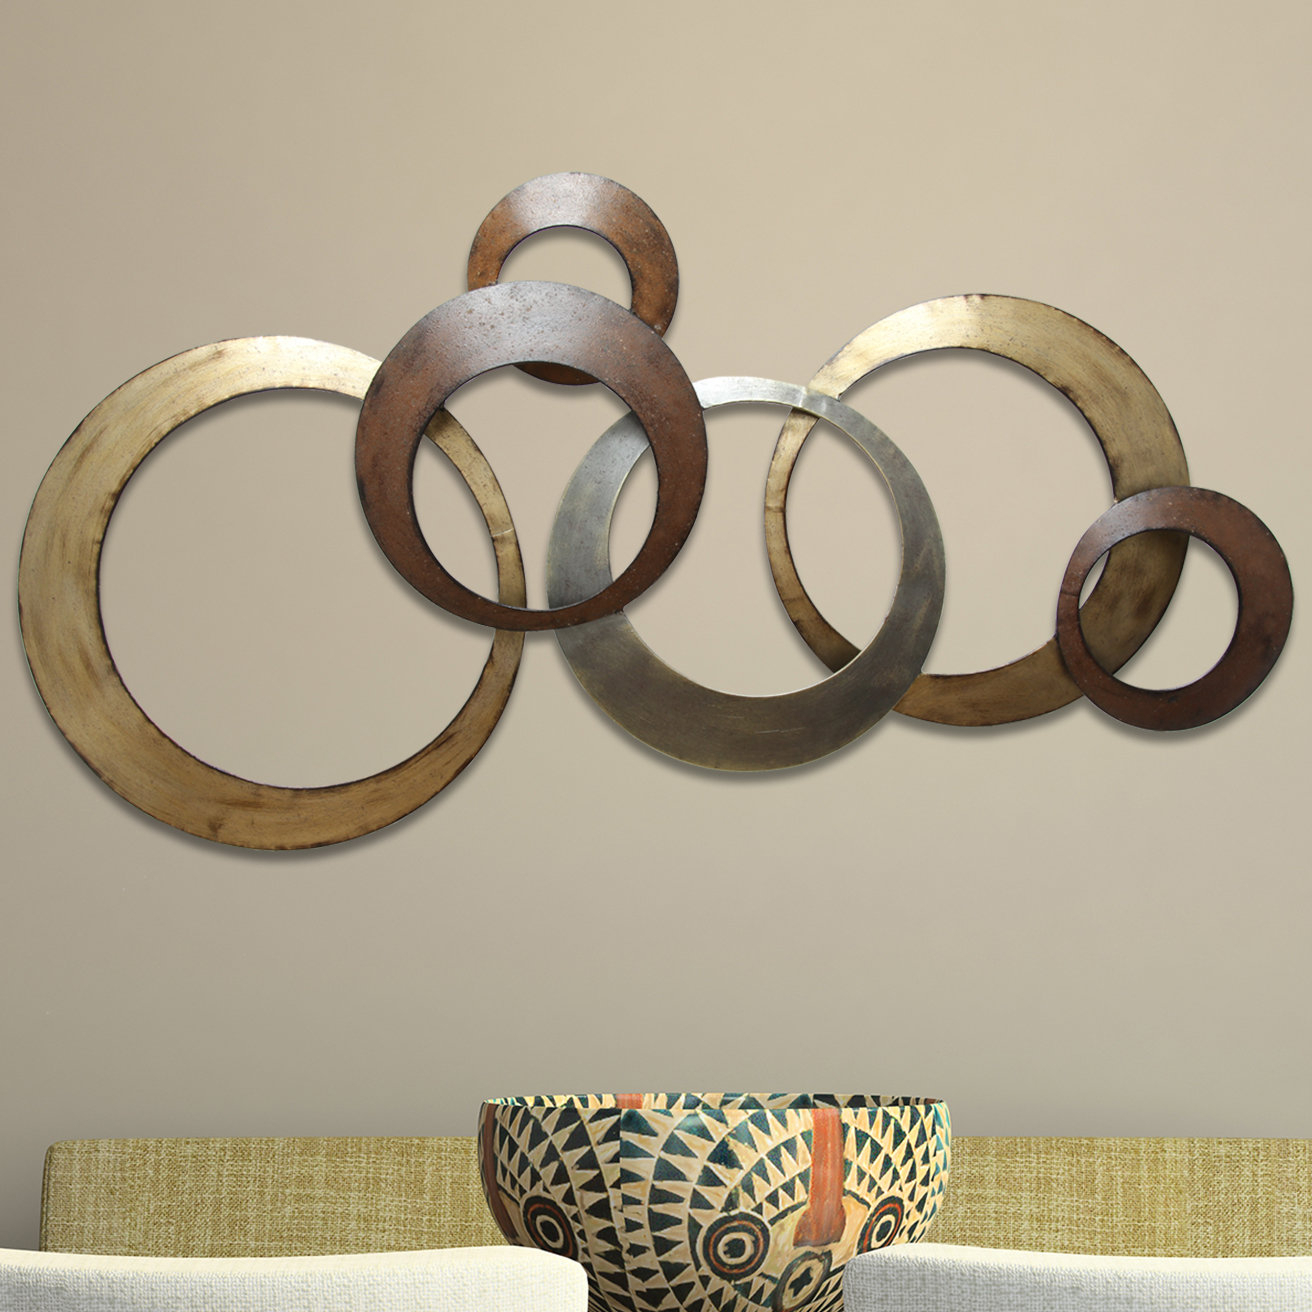 Preferred Rings Wall Decor Pertaining To Stratton Home Decor Rings Wall Décor & Reviews (View 9 of 20)